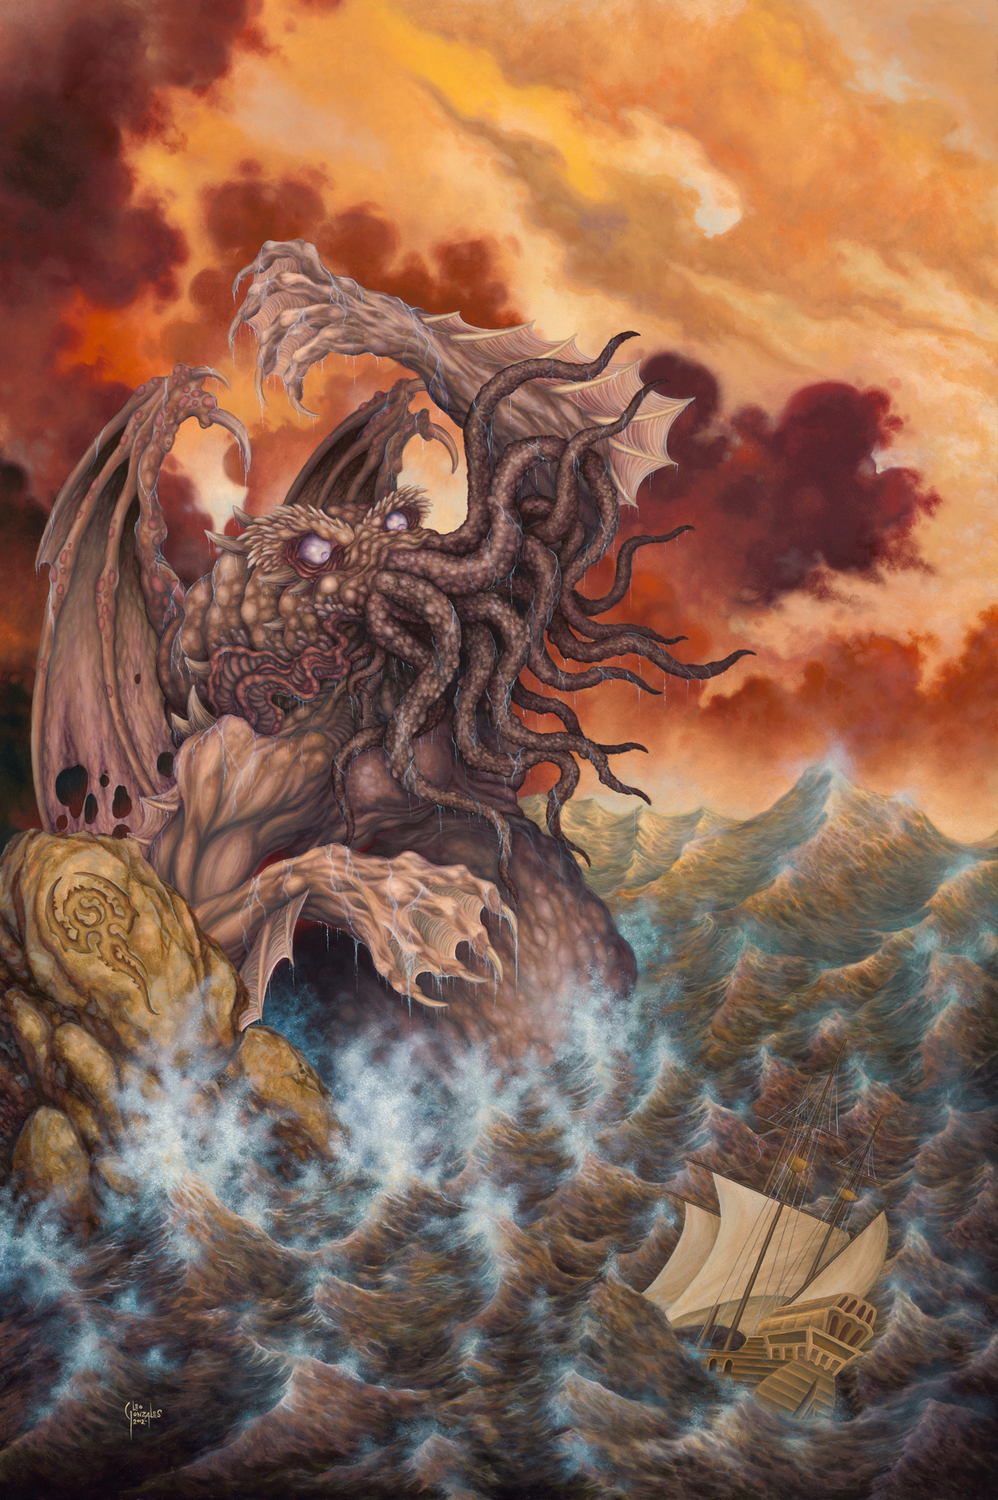 Cthulhu Rising Artwork by Leo Gonzales